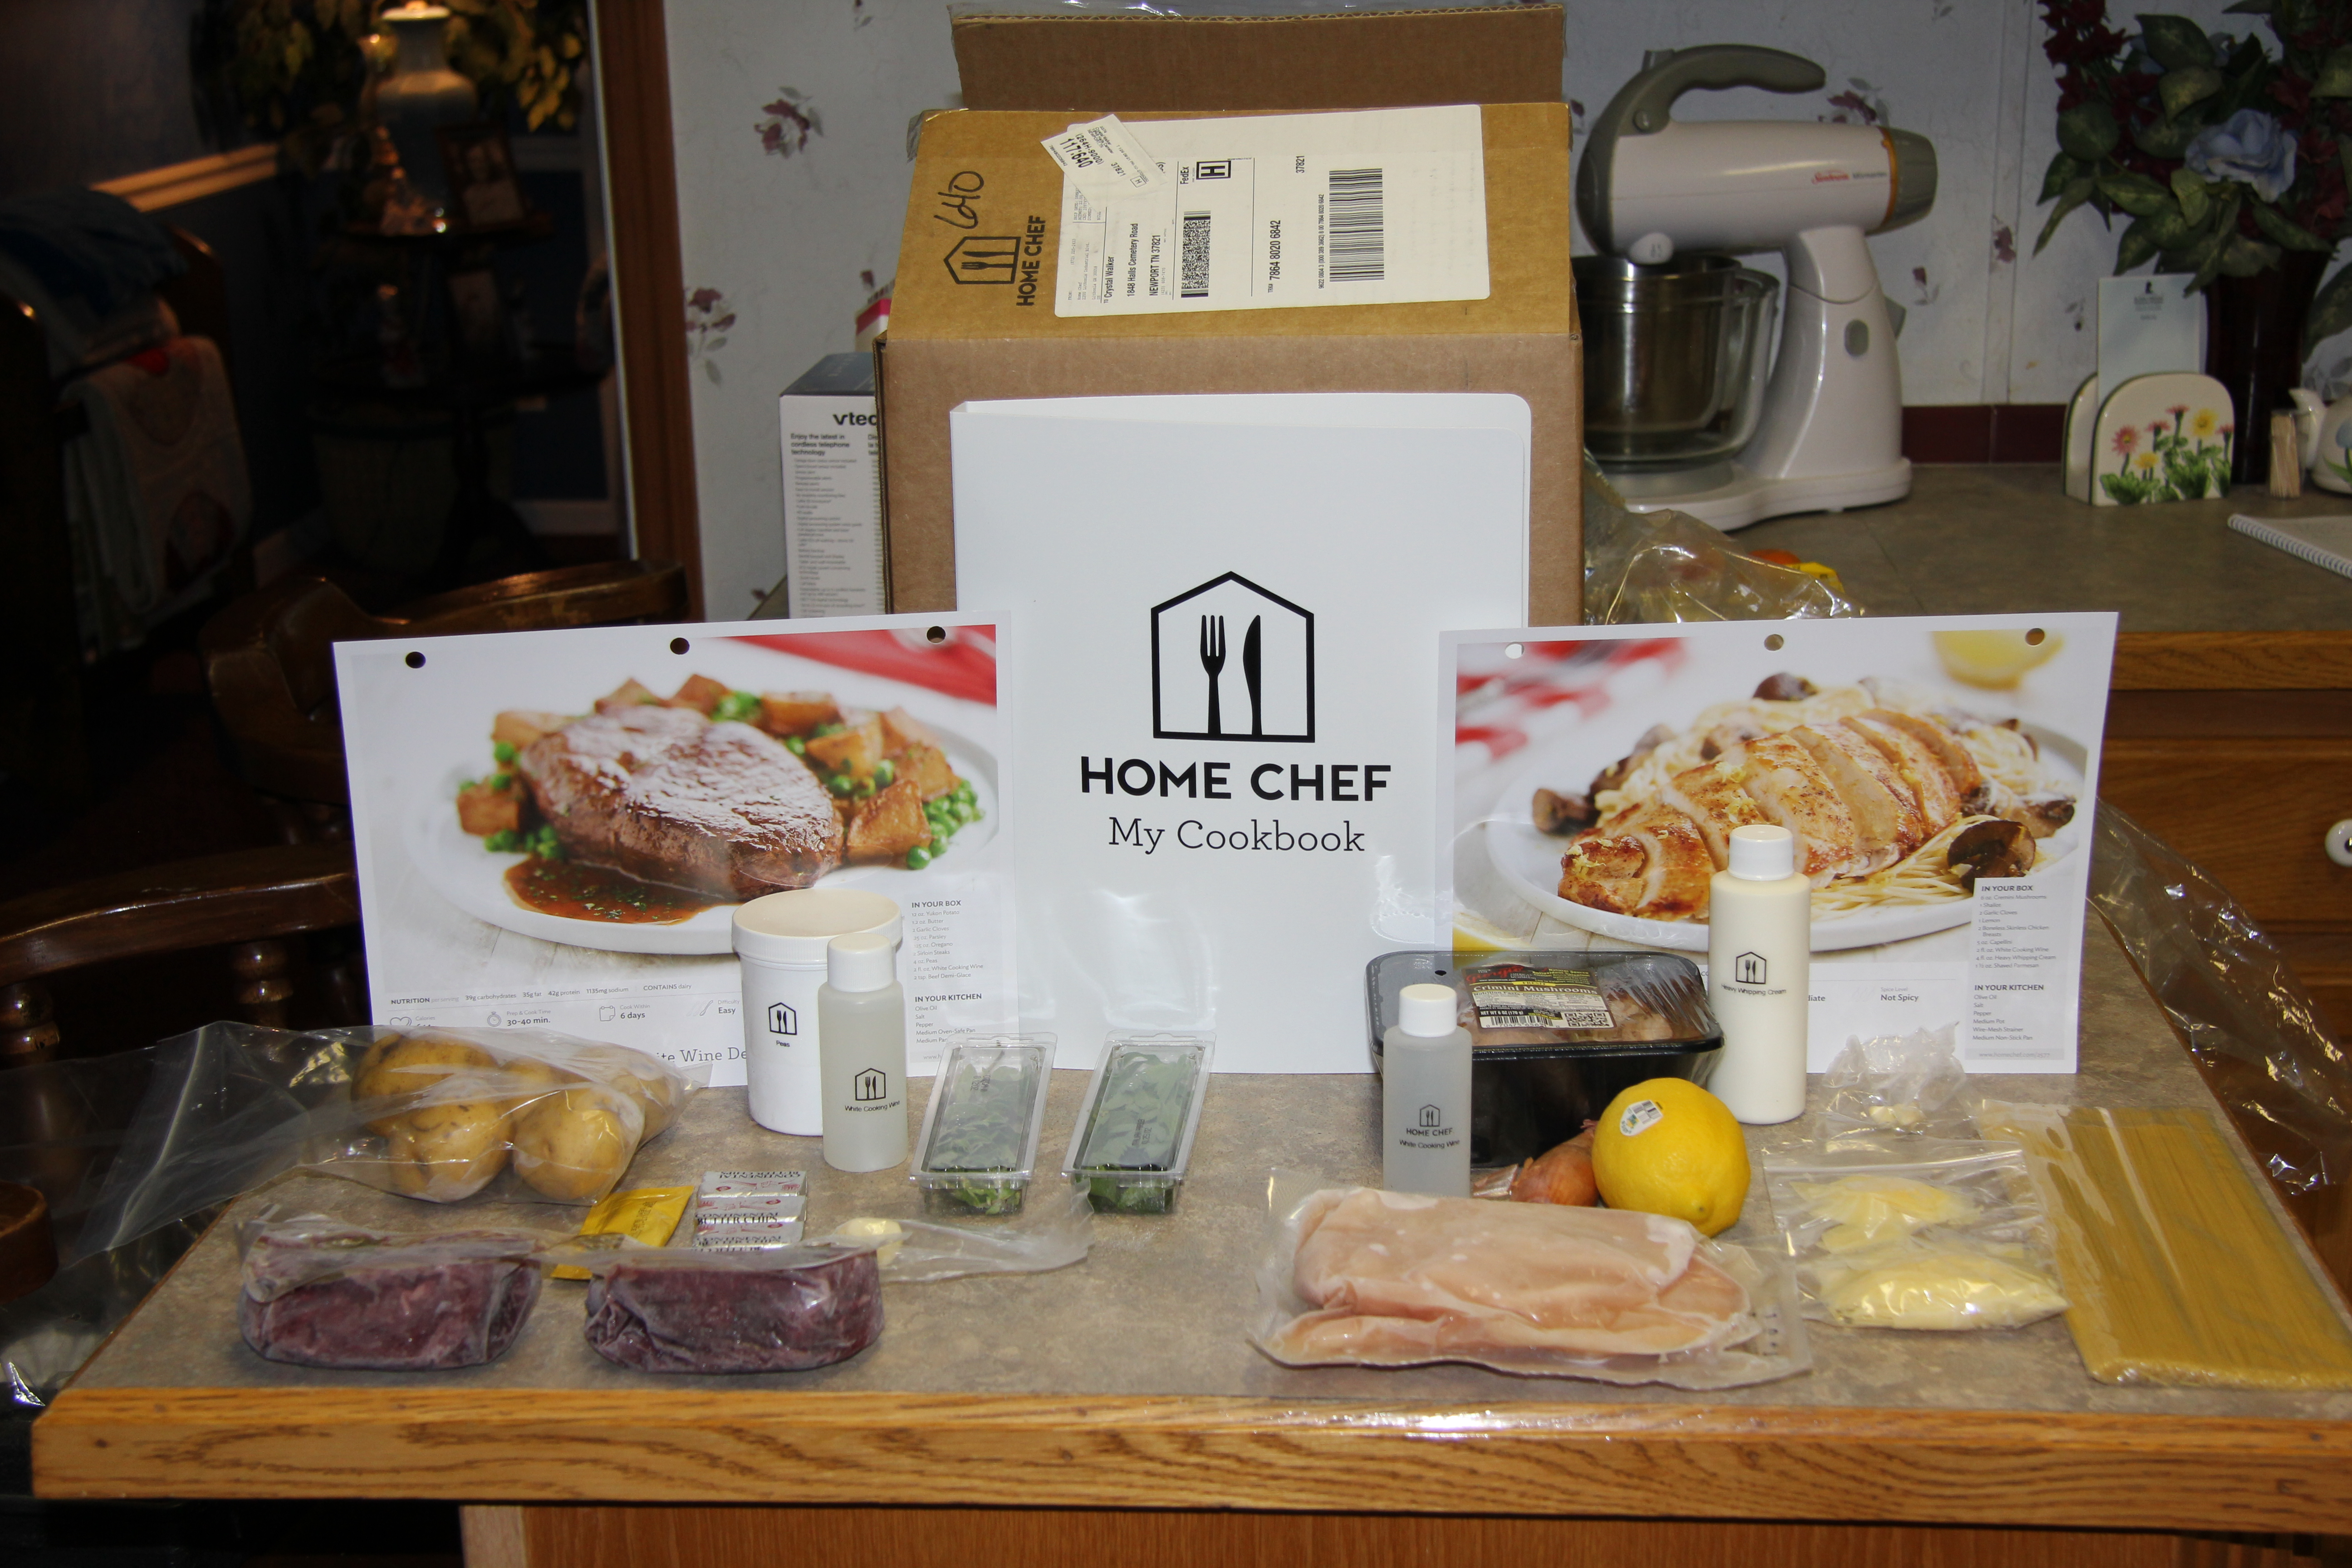 Home chef meal delivery review bb product reviews for Chef comes to your house